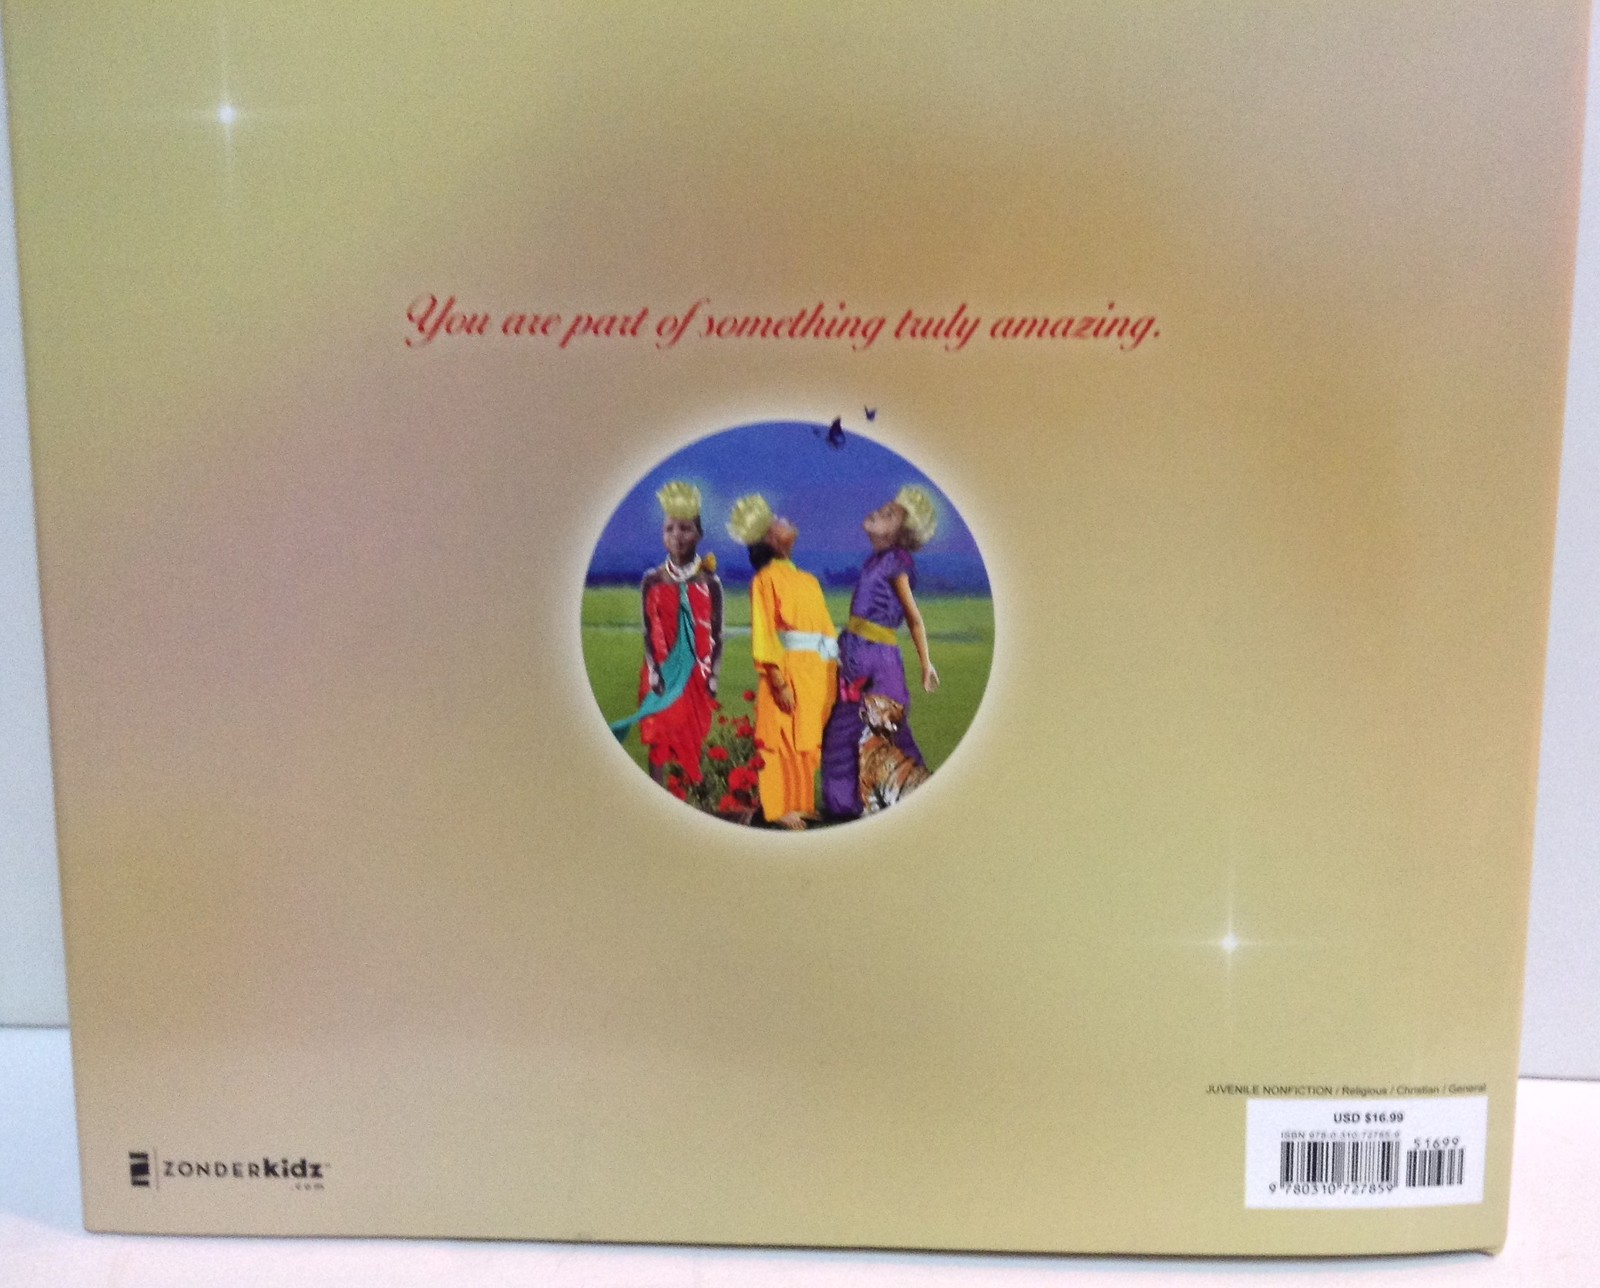 LET THERE BE LIGHT Archbishop Desmond Tutu ISBN 9780310727859 NEW